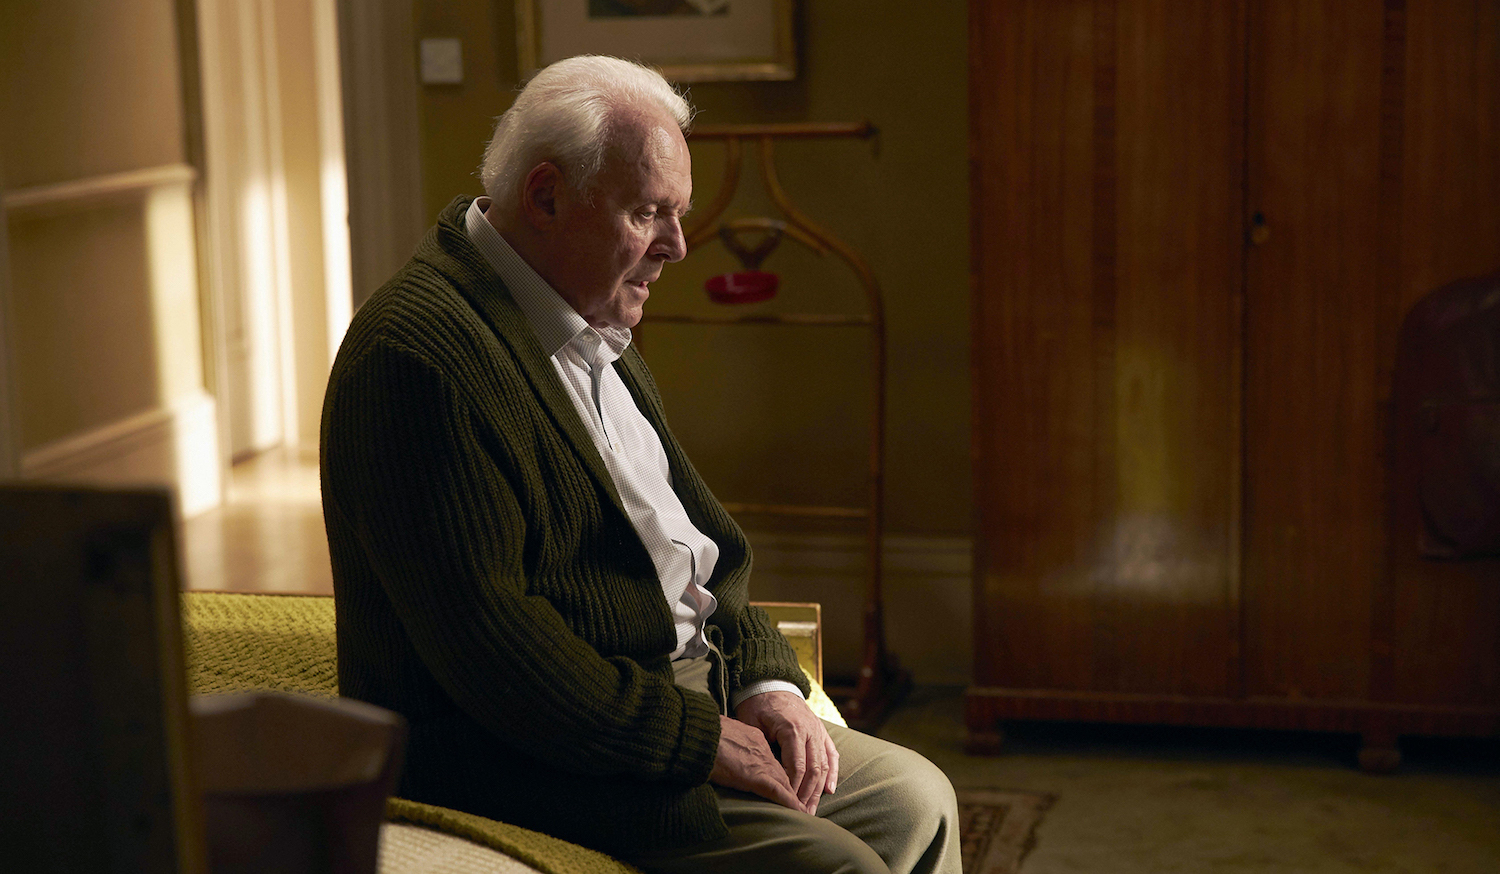 Oscars 2021: Anthony Hopkins Win Shows Danger of Relying on Predictions